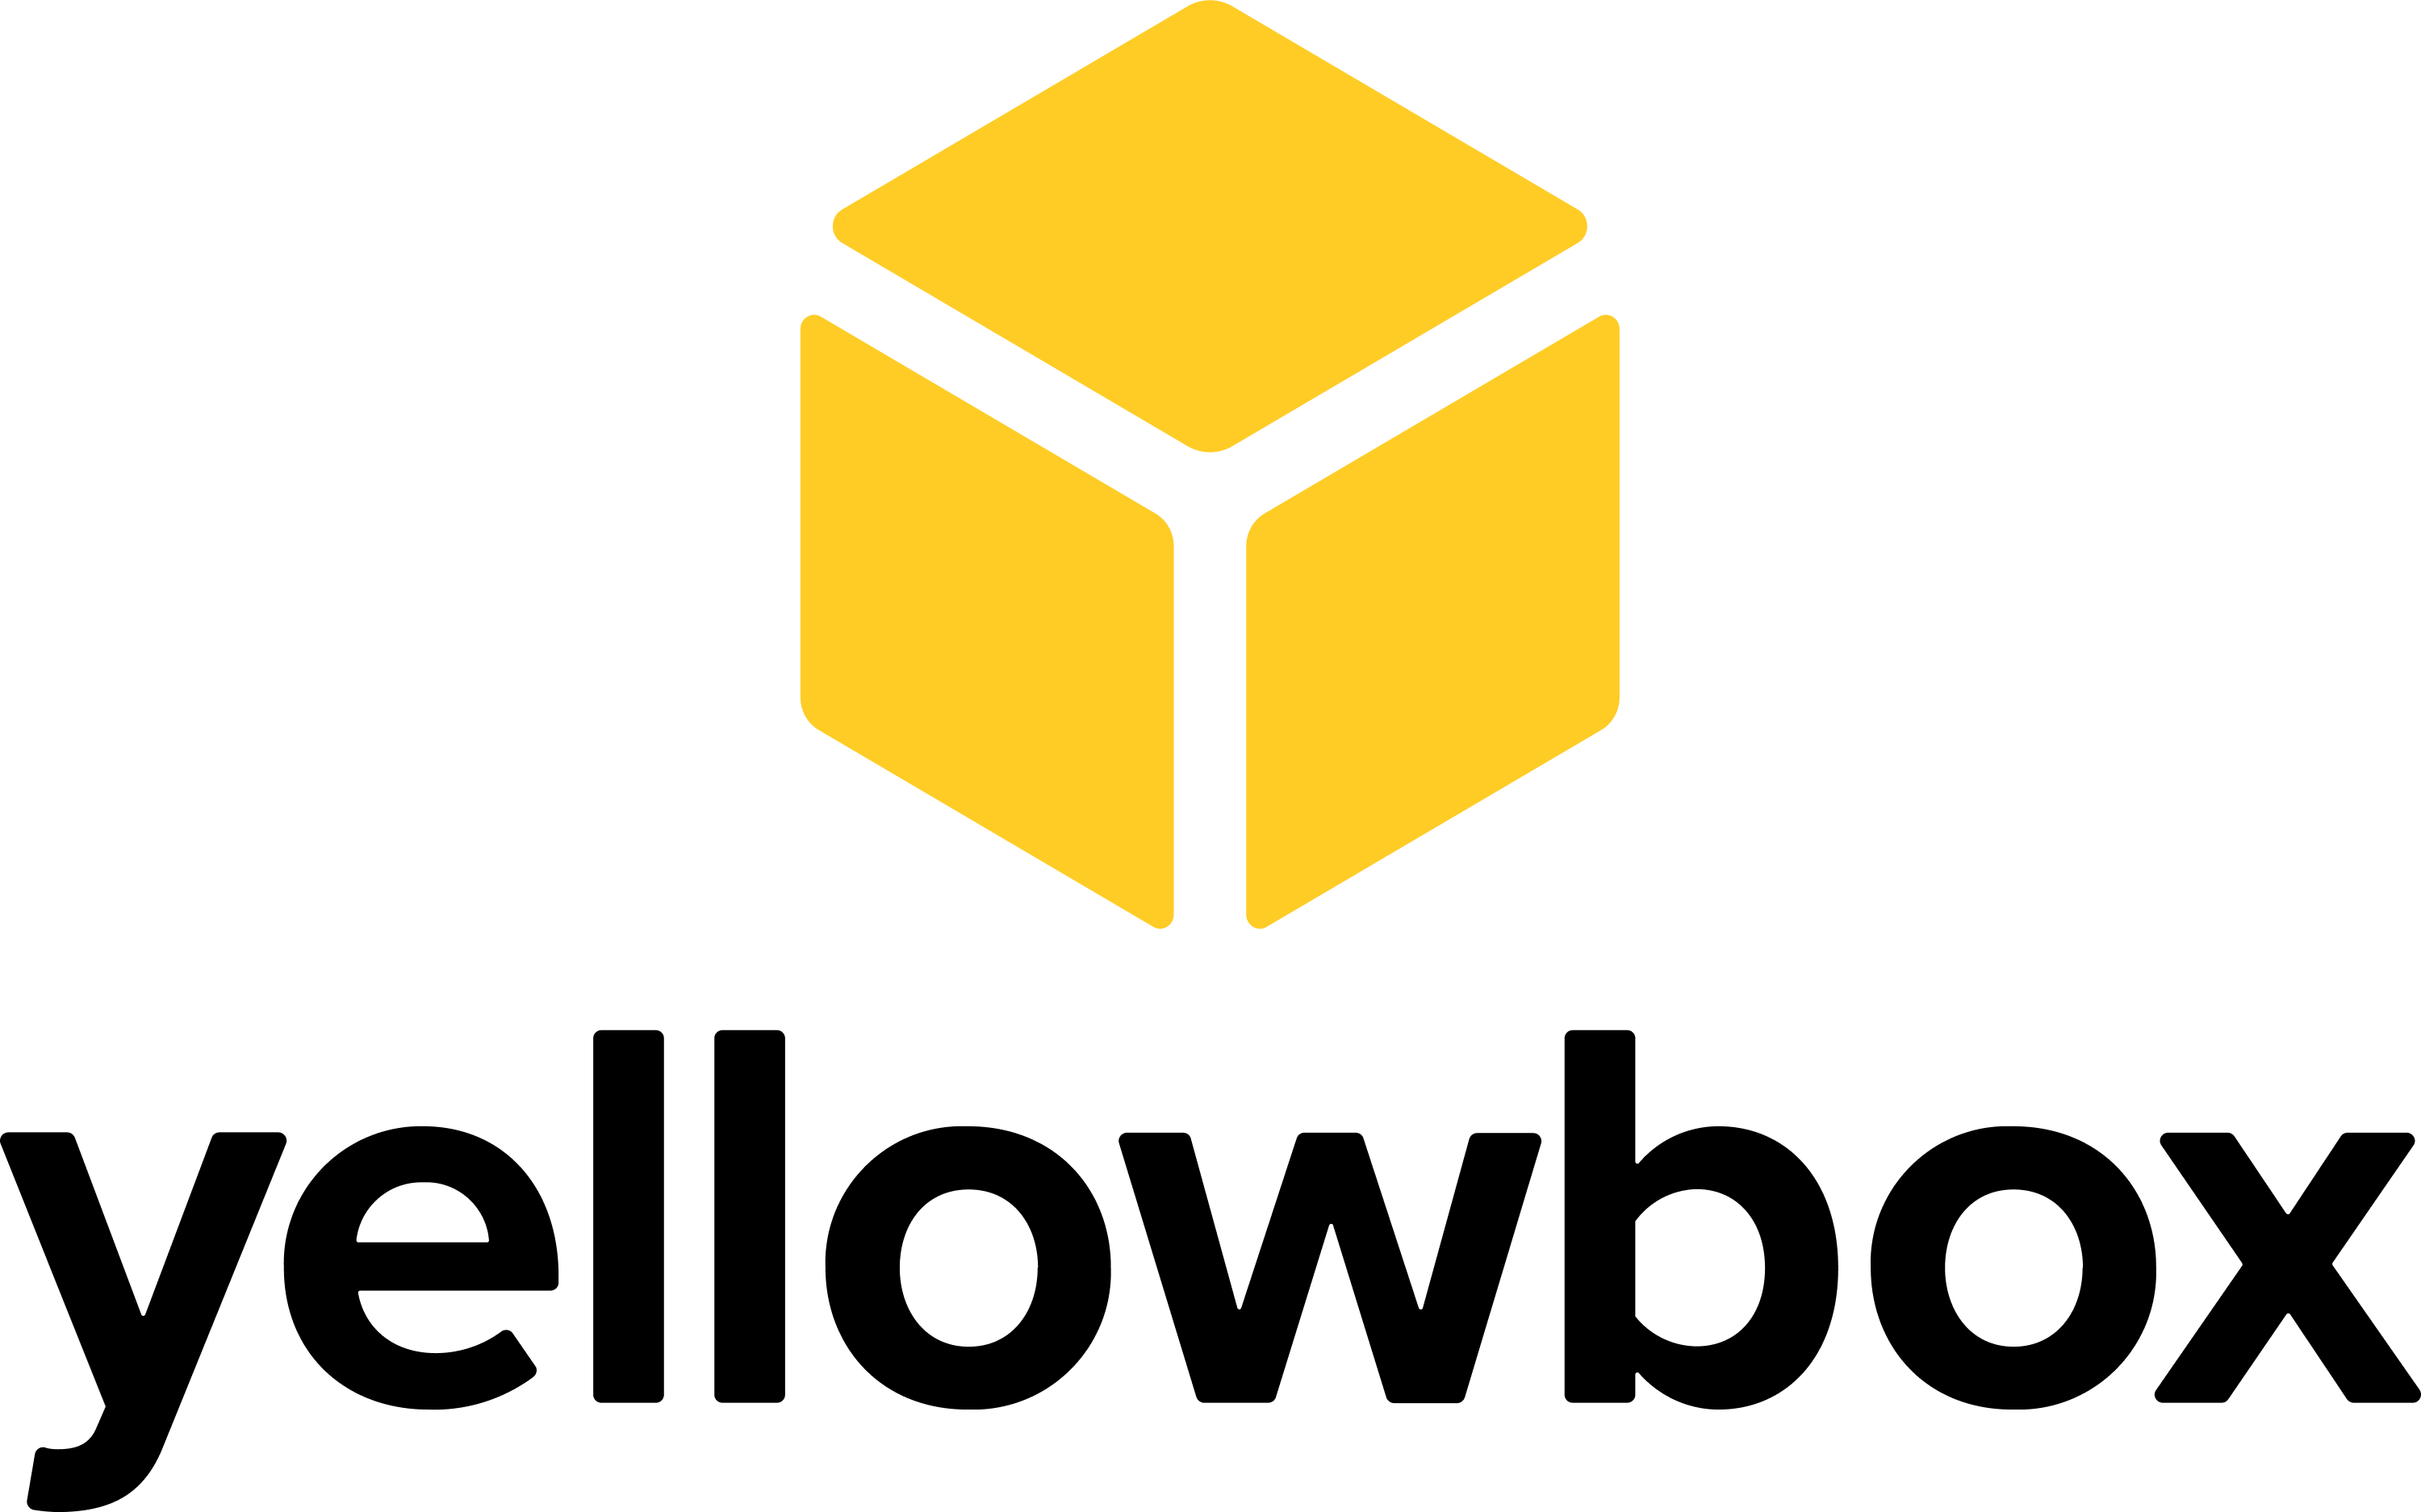 Yellowbox Logo